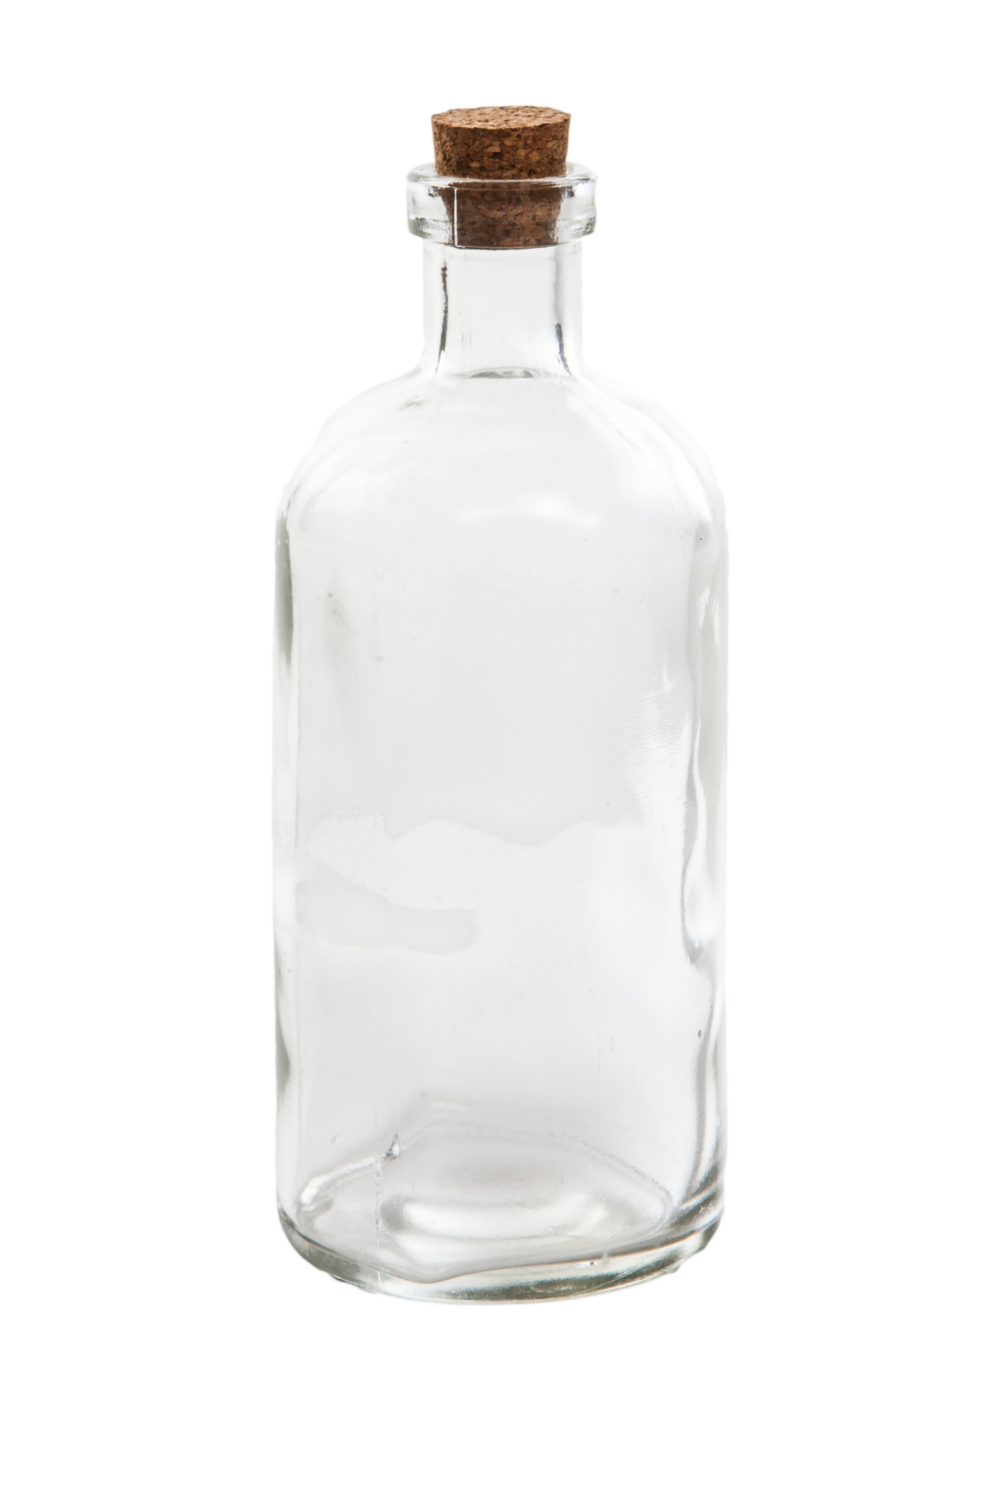 Small Clear Glass Message Bottle with Cork H14cm  : lrgscaleMessageBottle from www.blendboutique.co.uk size 1000 x 1500 jpeg 199kB